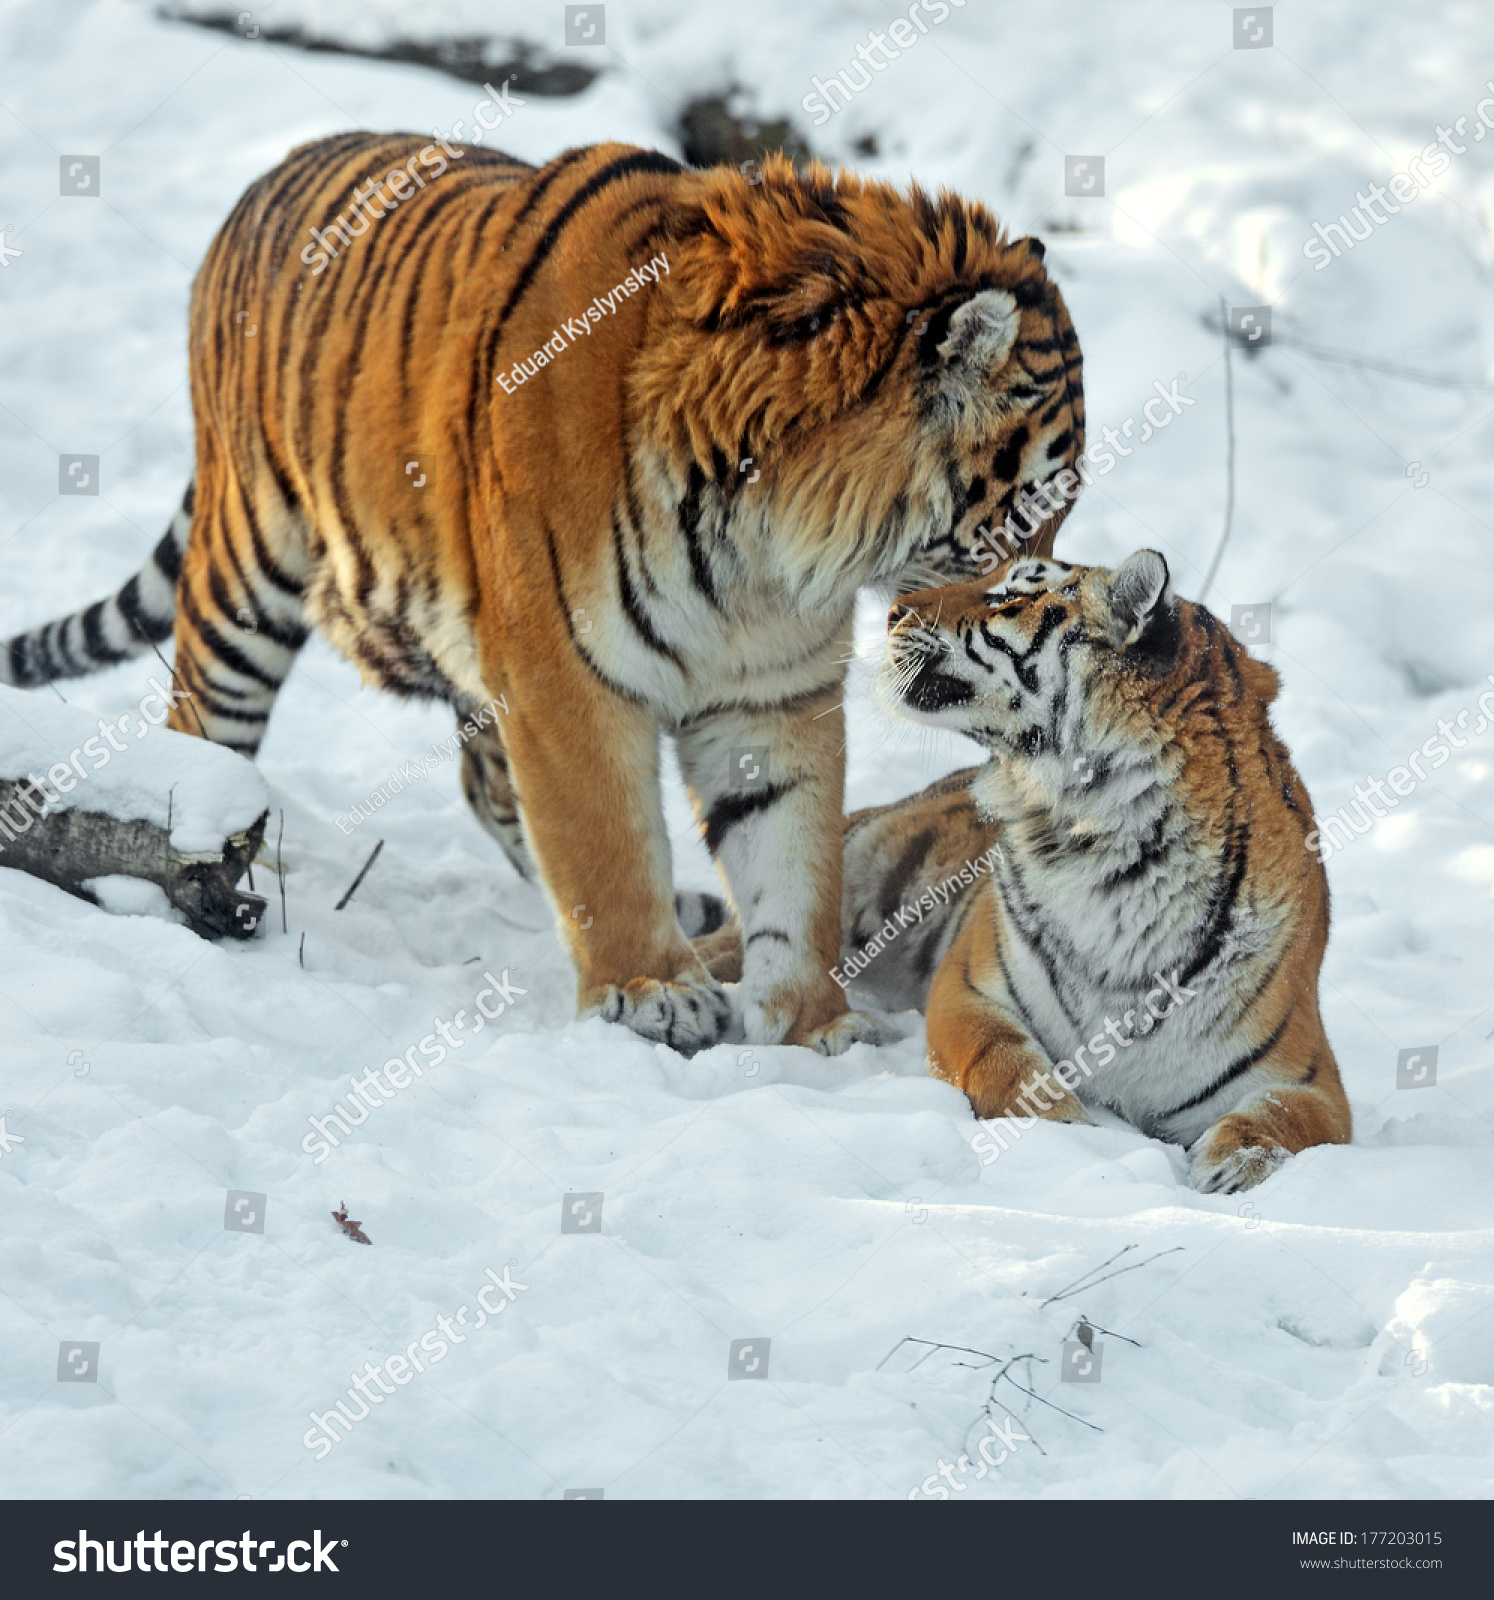 Amur Tiger in the woods in winter #177203015